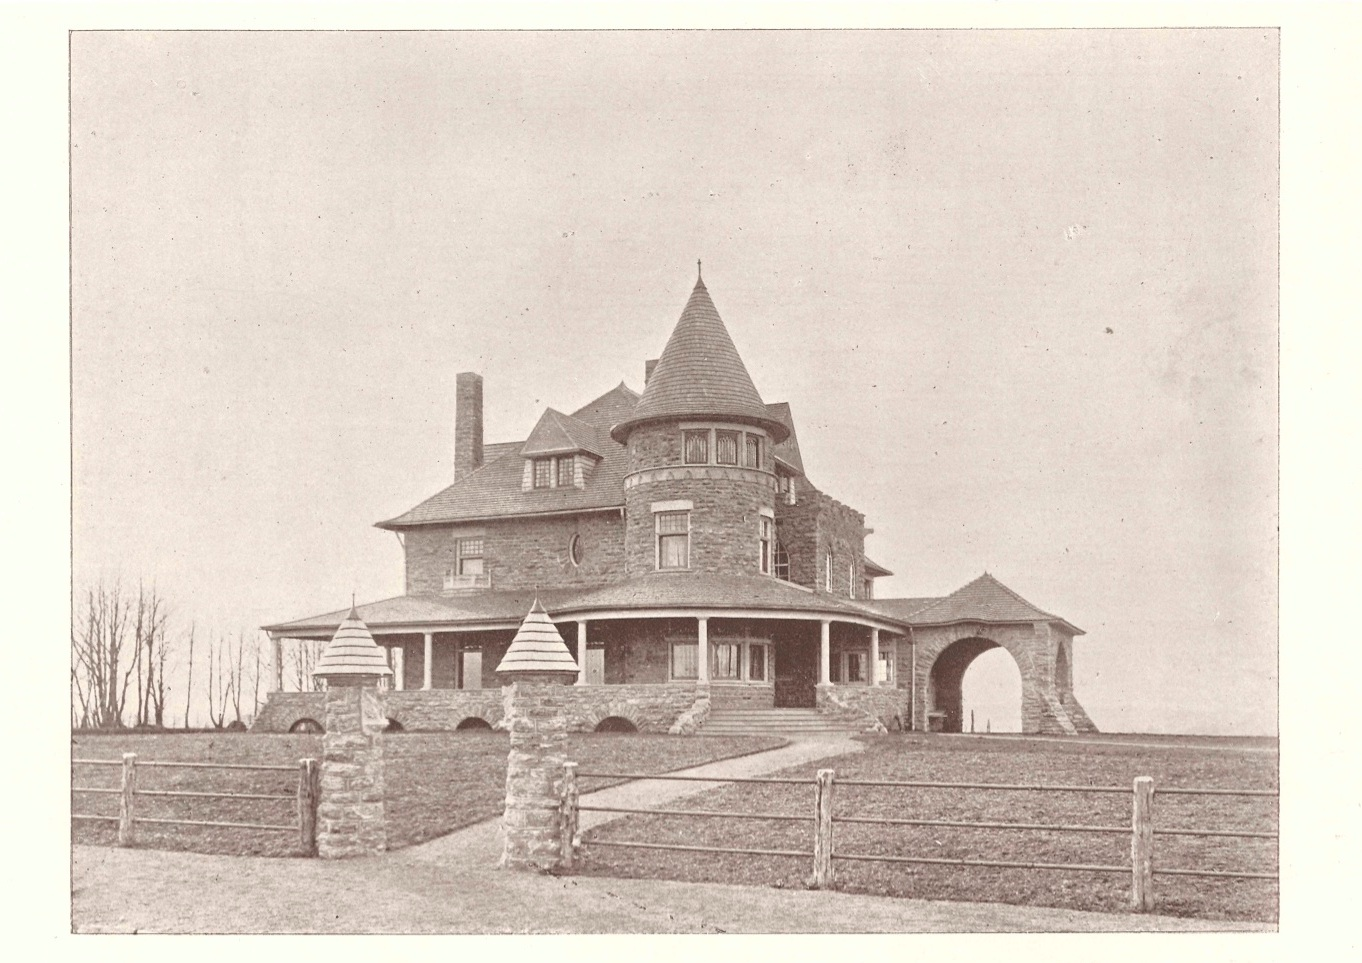 Mt. Airy, PA home - 1894